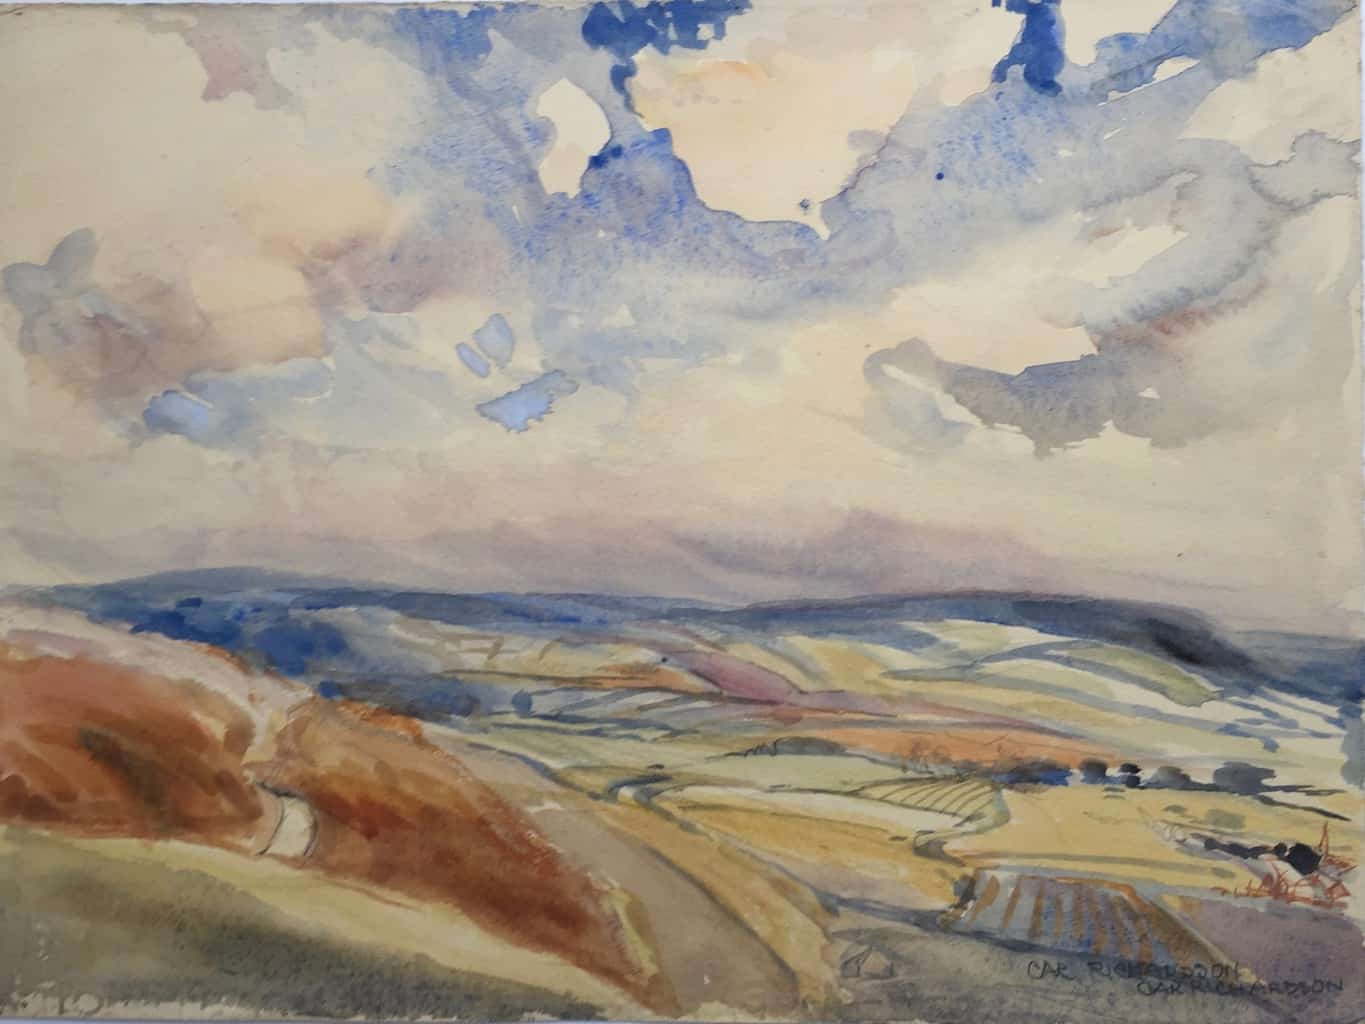 Painting of Near Whipsnade